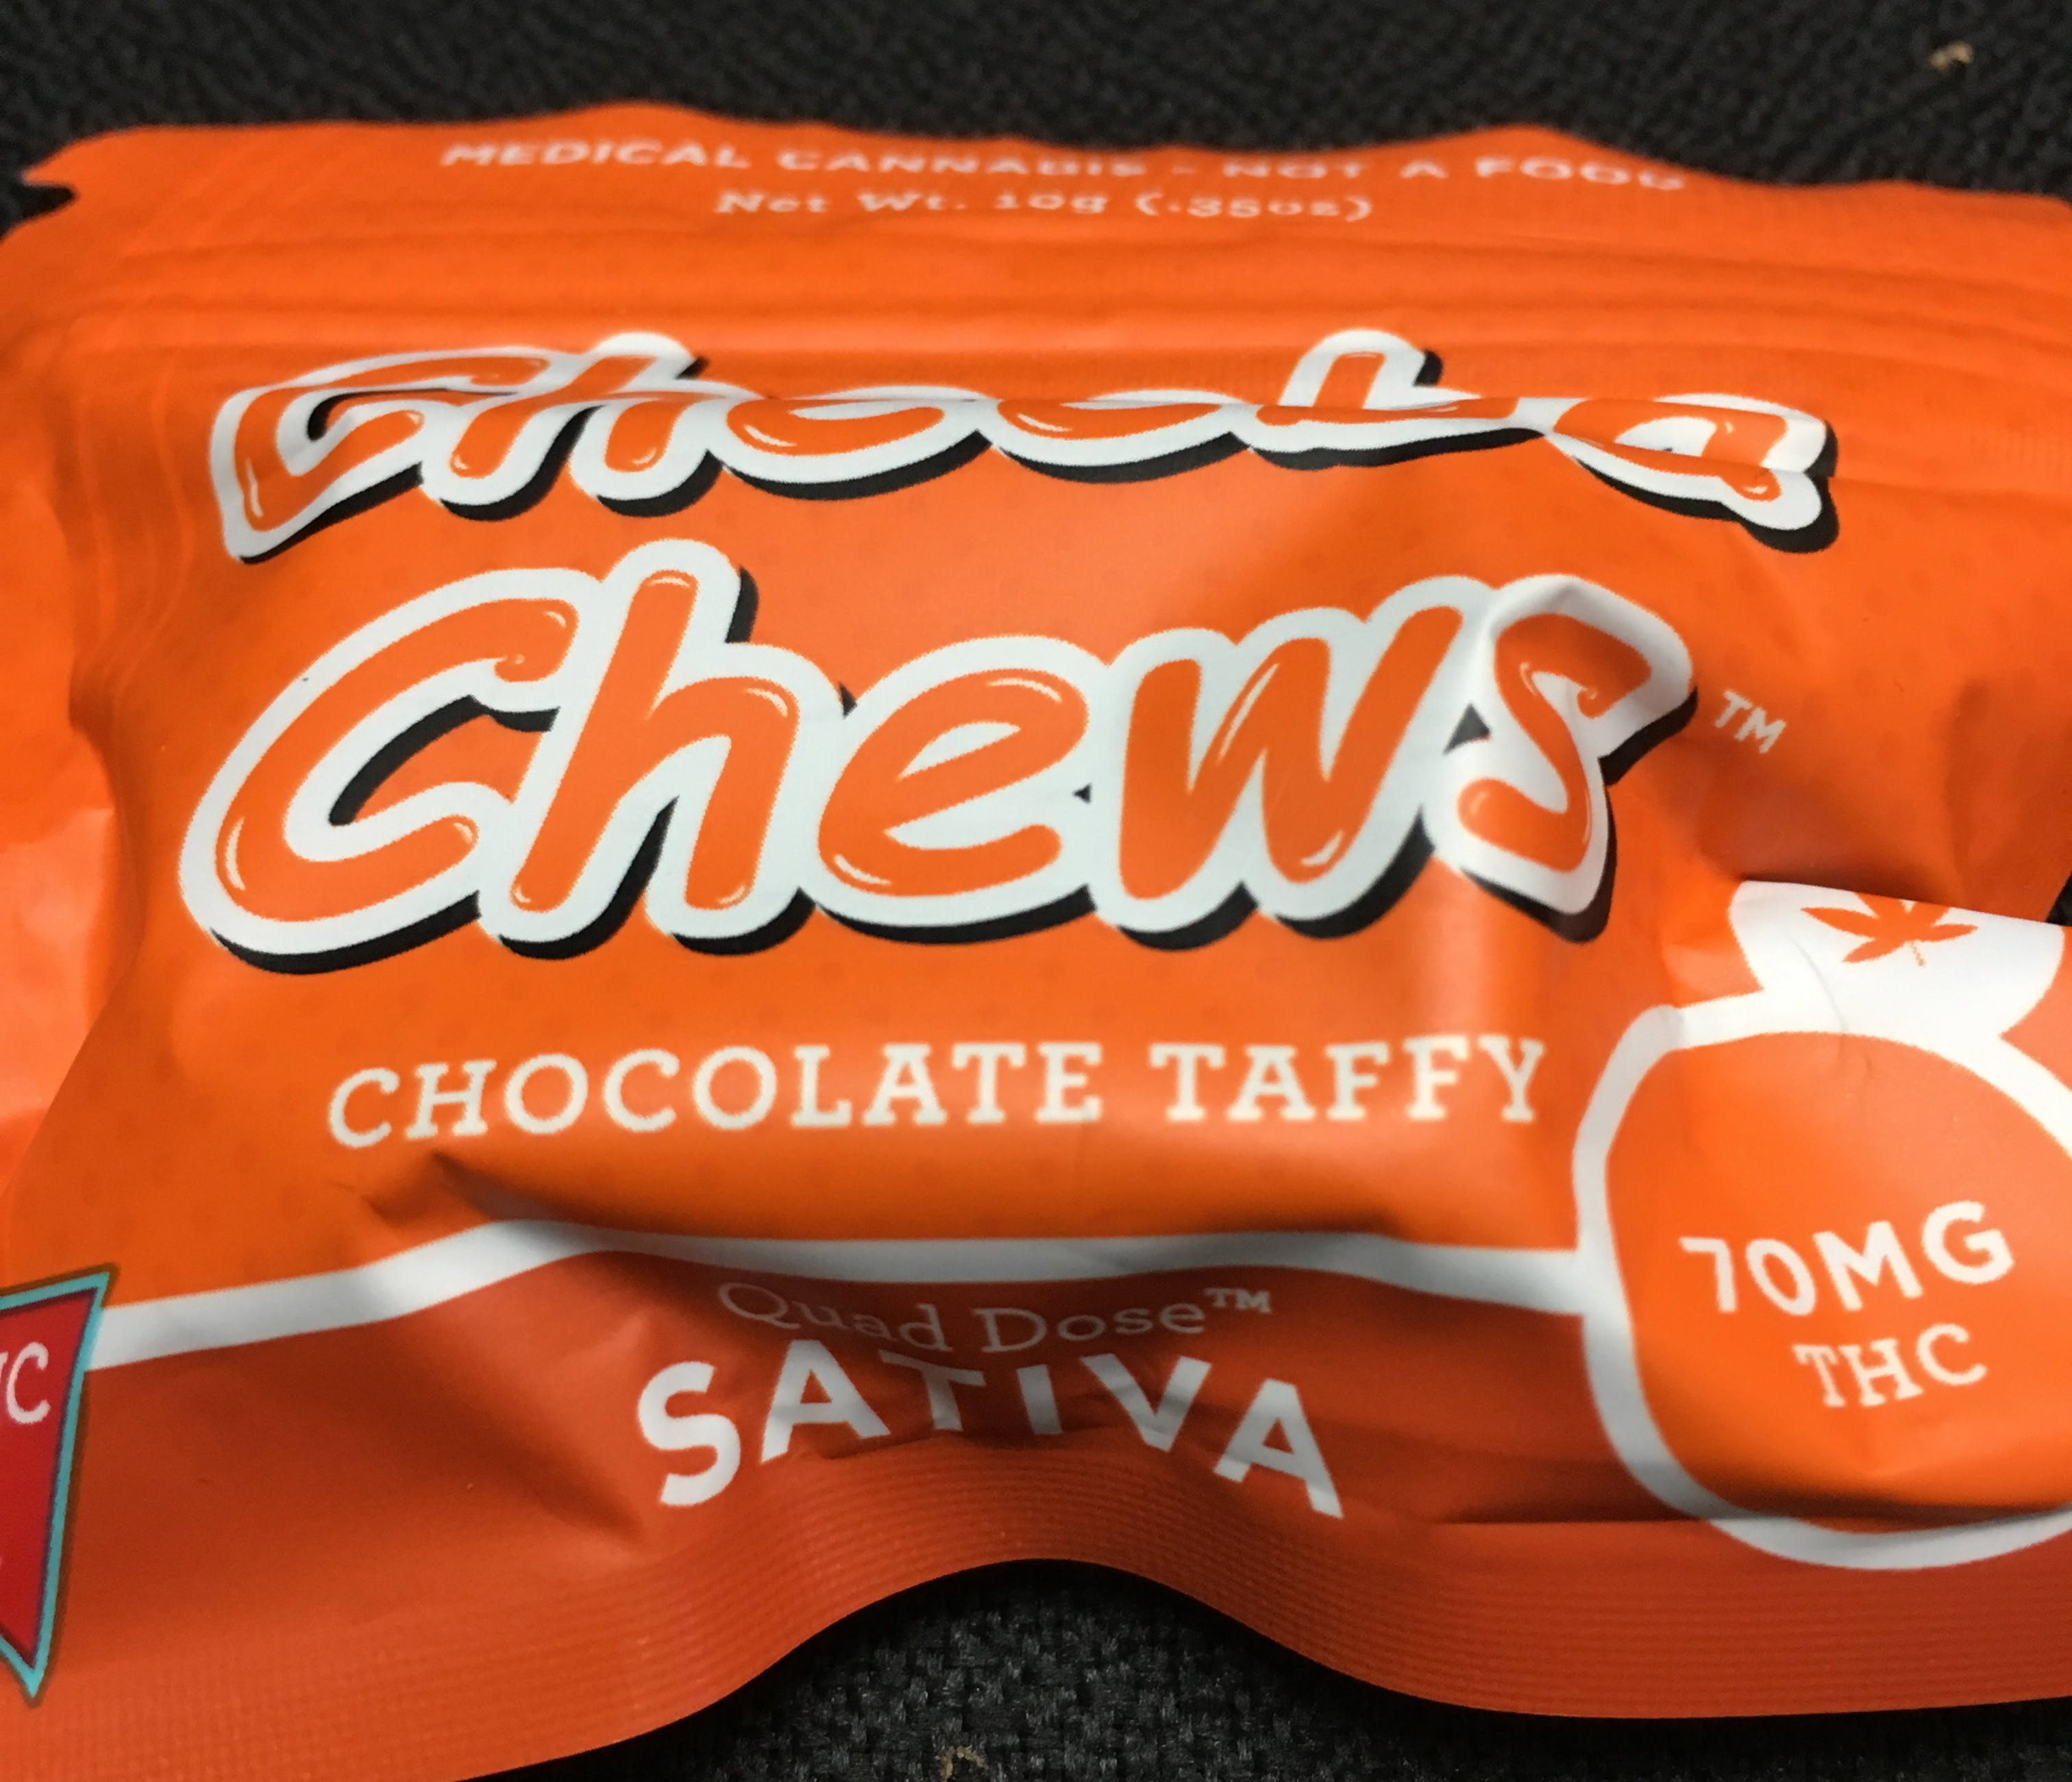 edible-cheeba-chews-70mg-thc